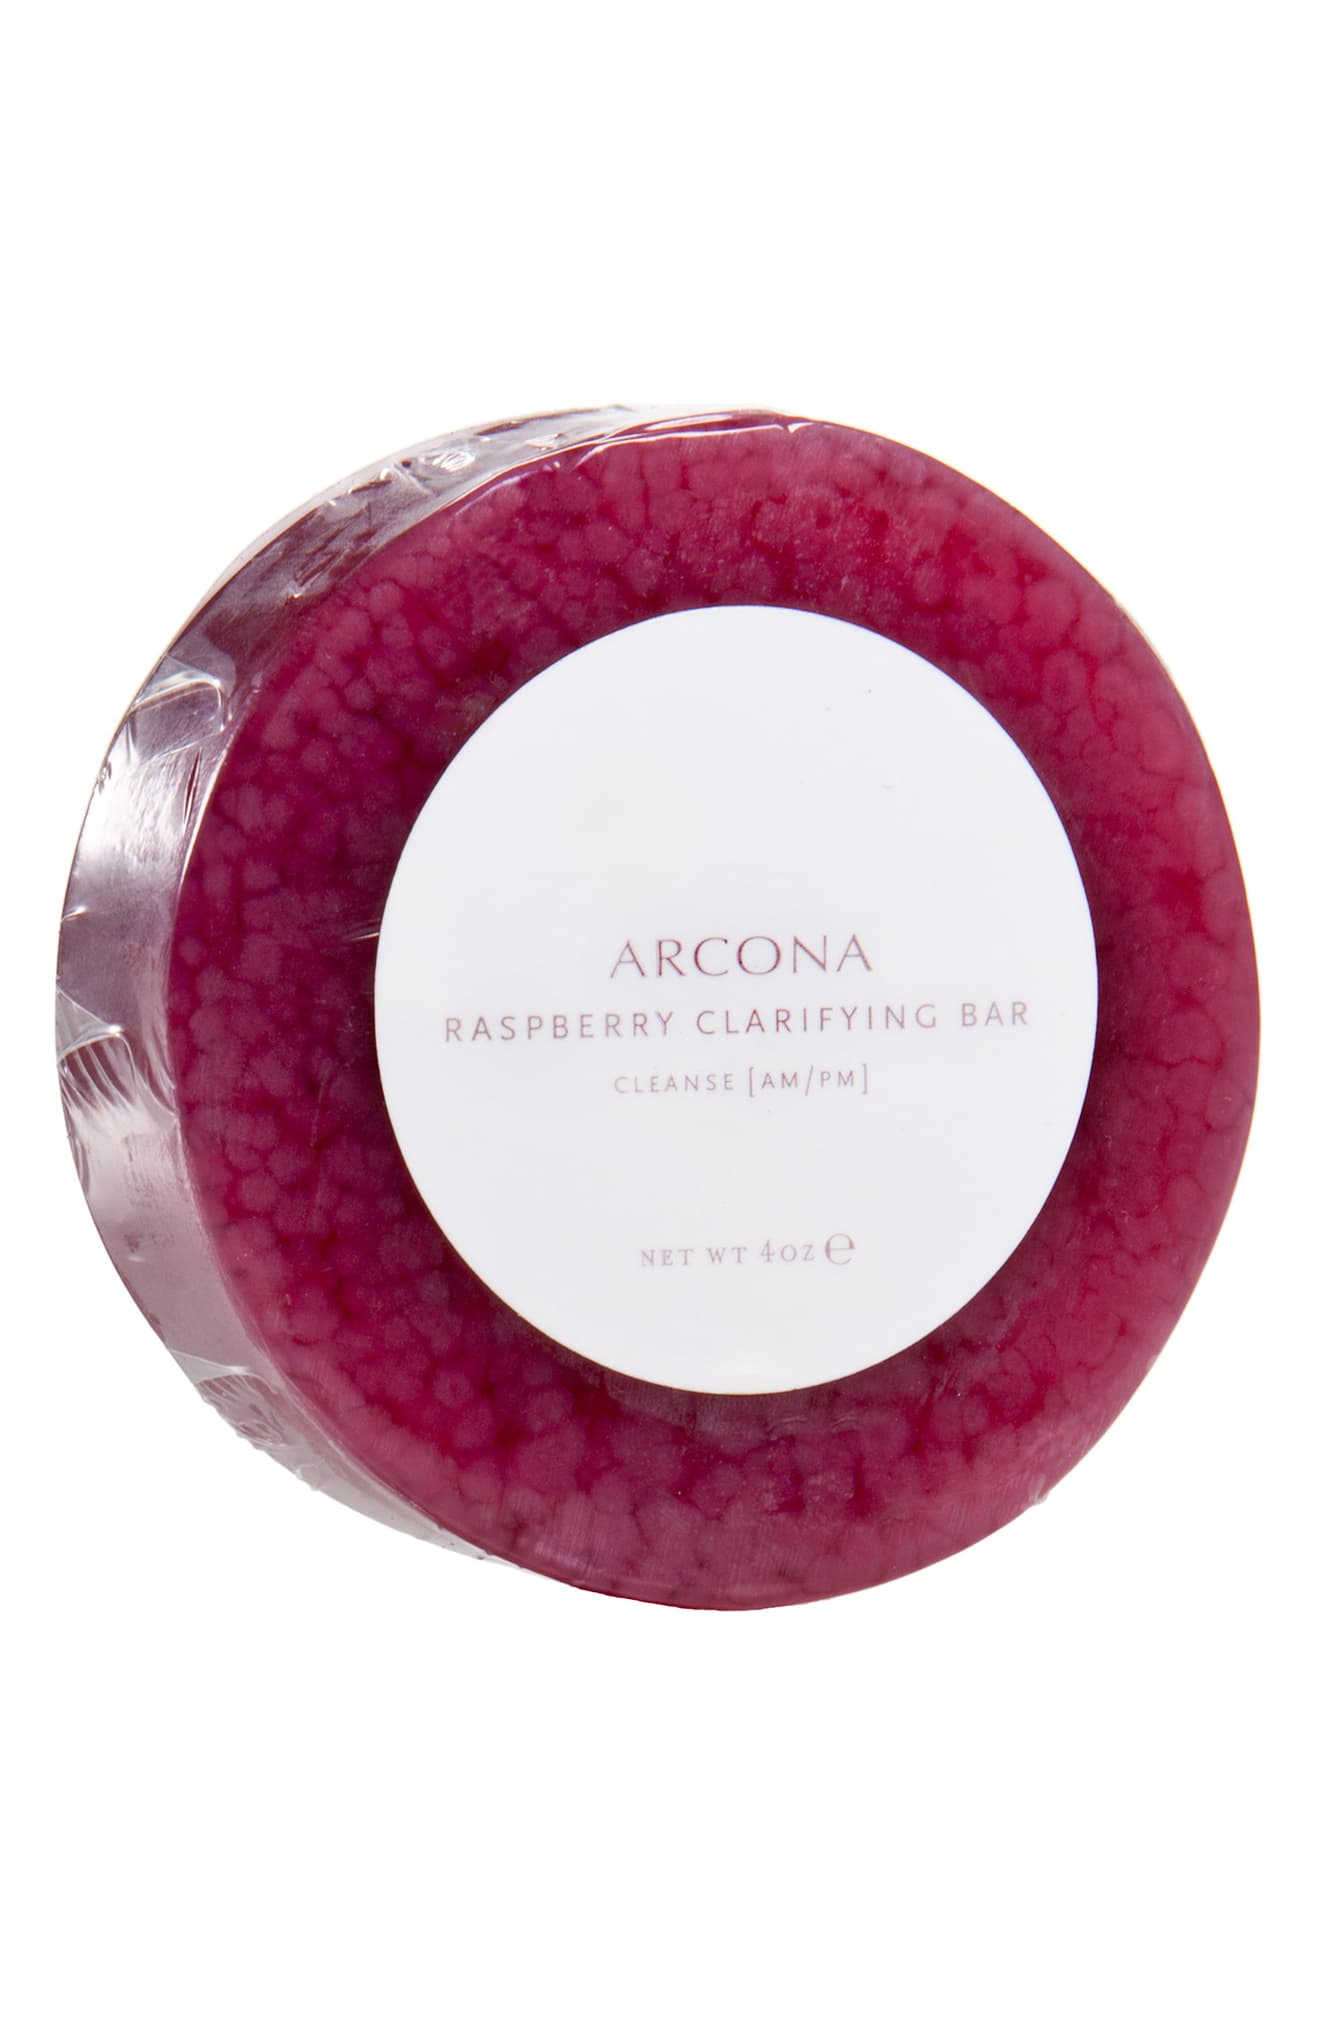 ARCONA Raspberry Clarifying Bar Cleanser